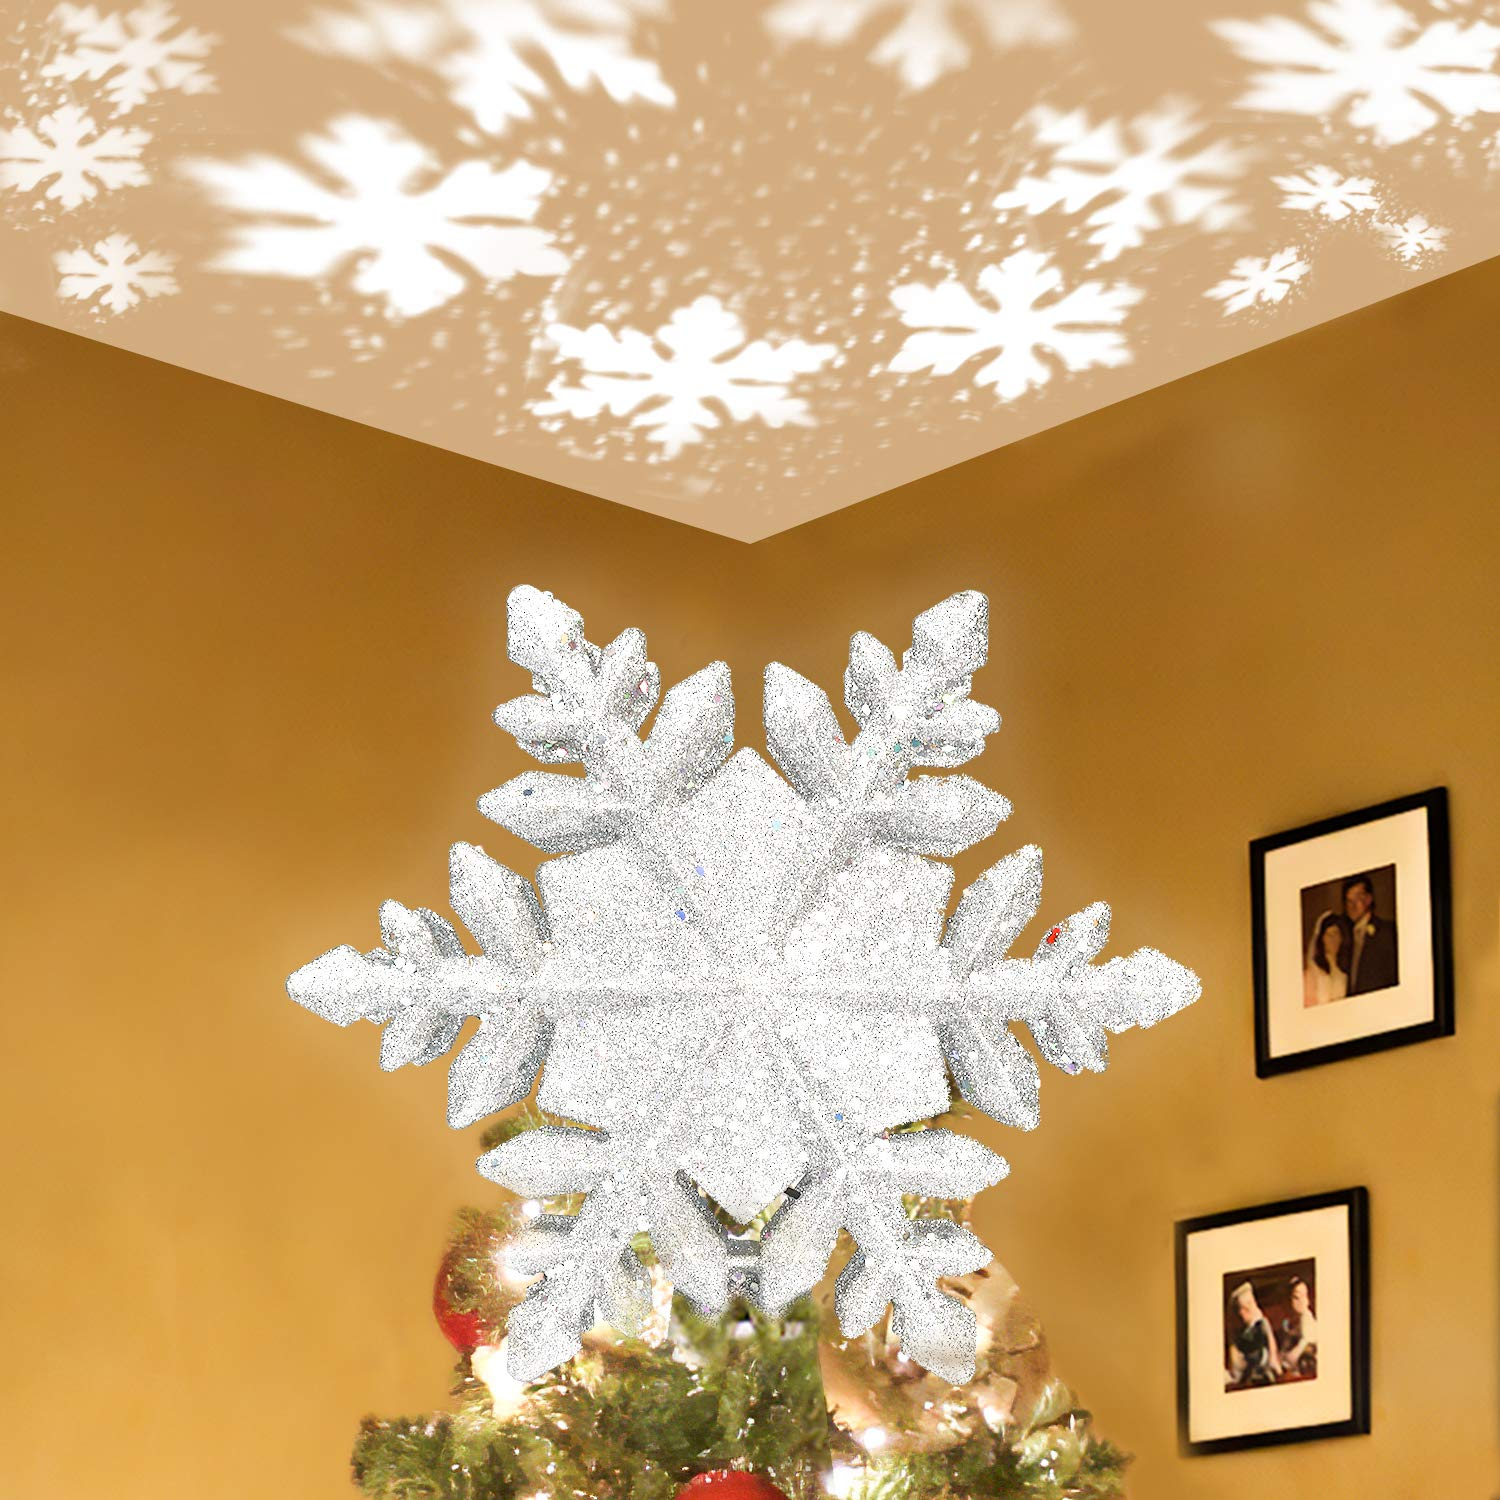 Lanpuly Christmas Tree Topper Star Lighted